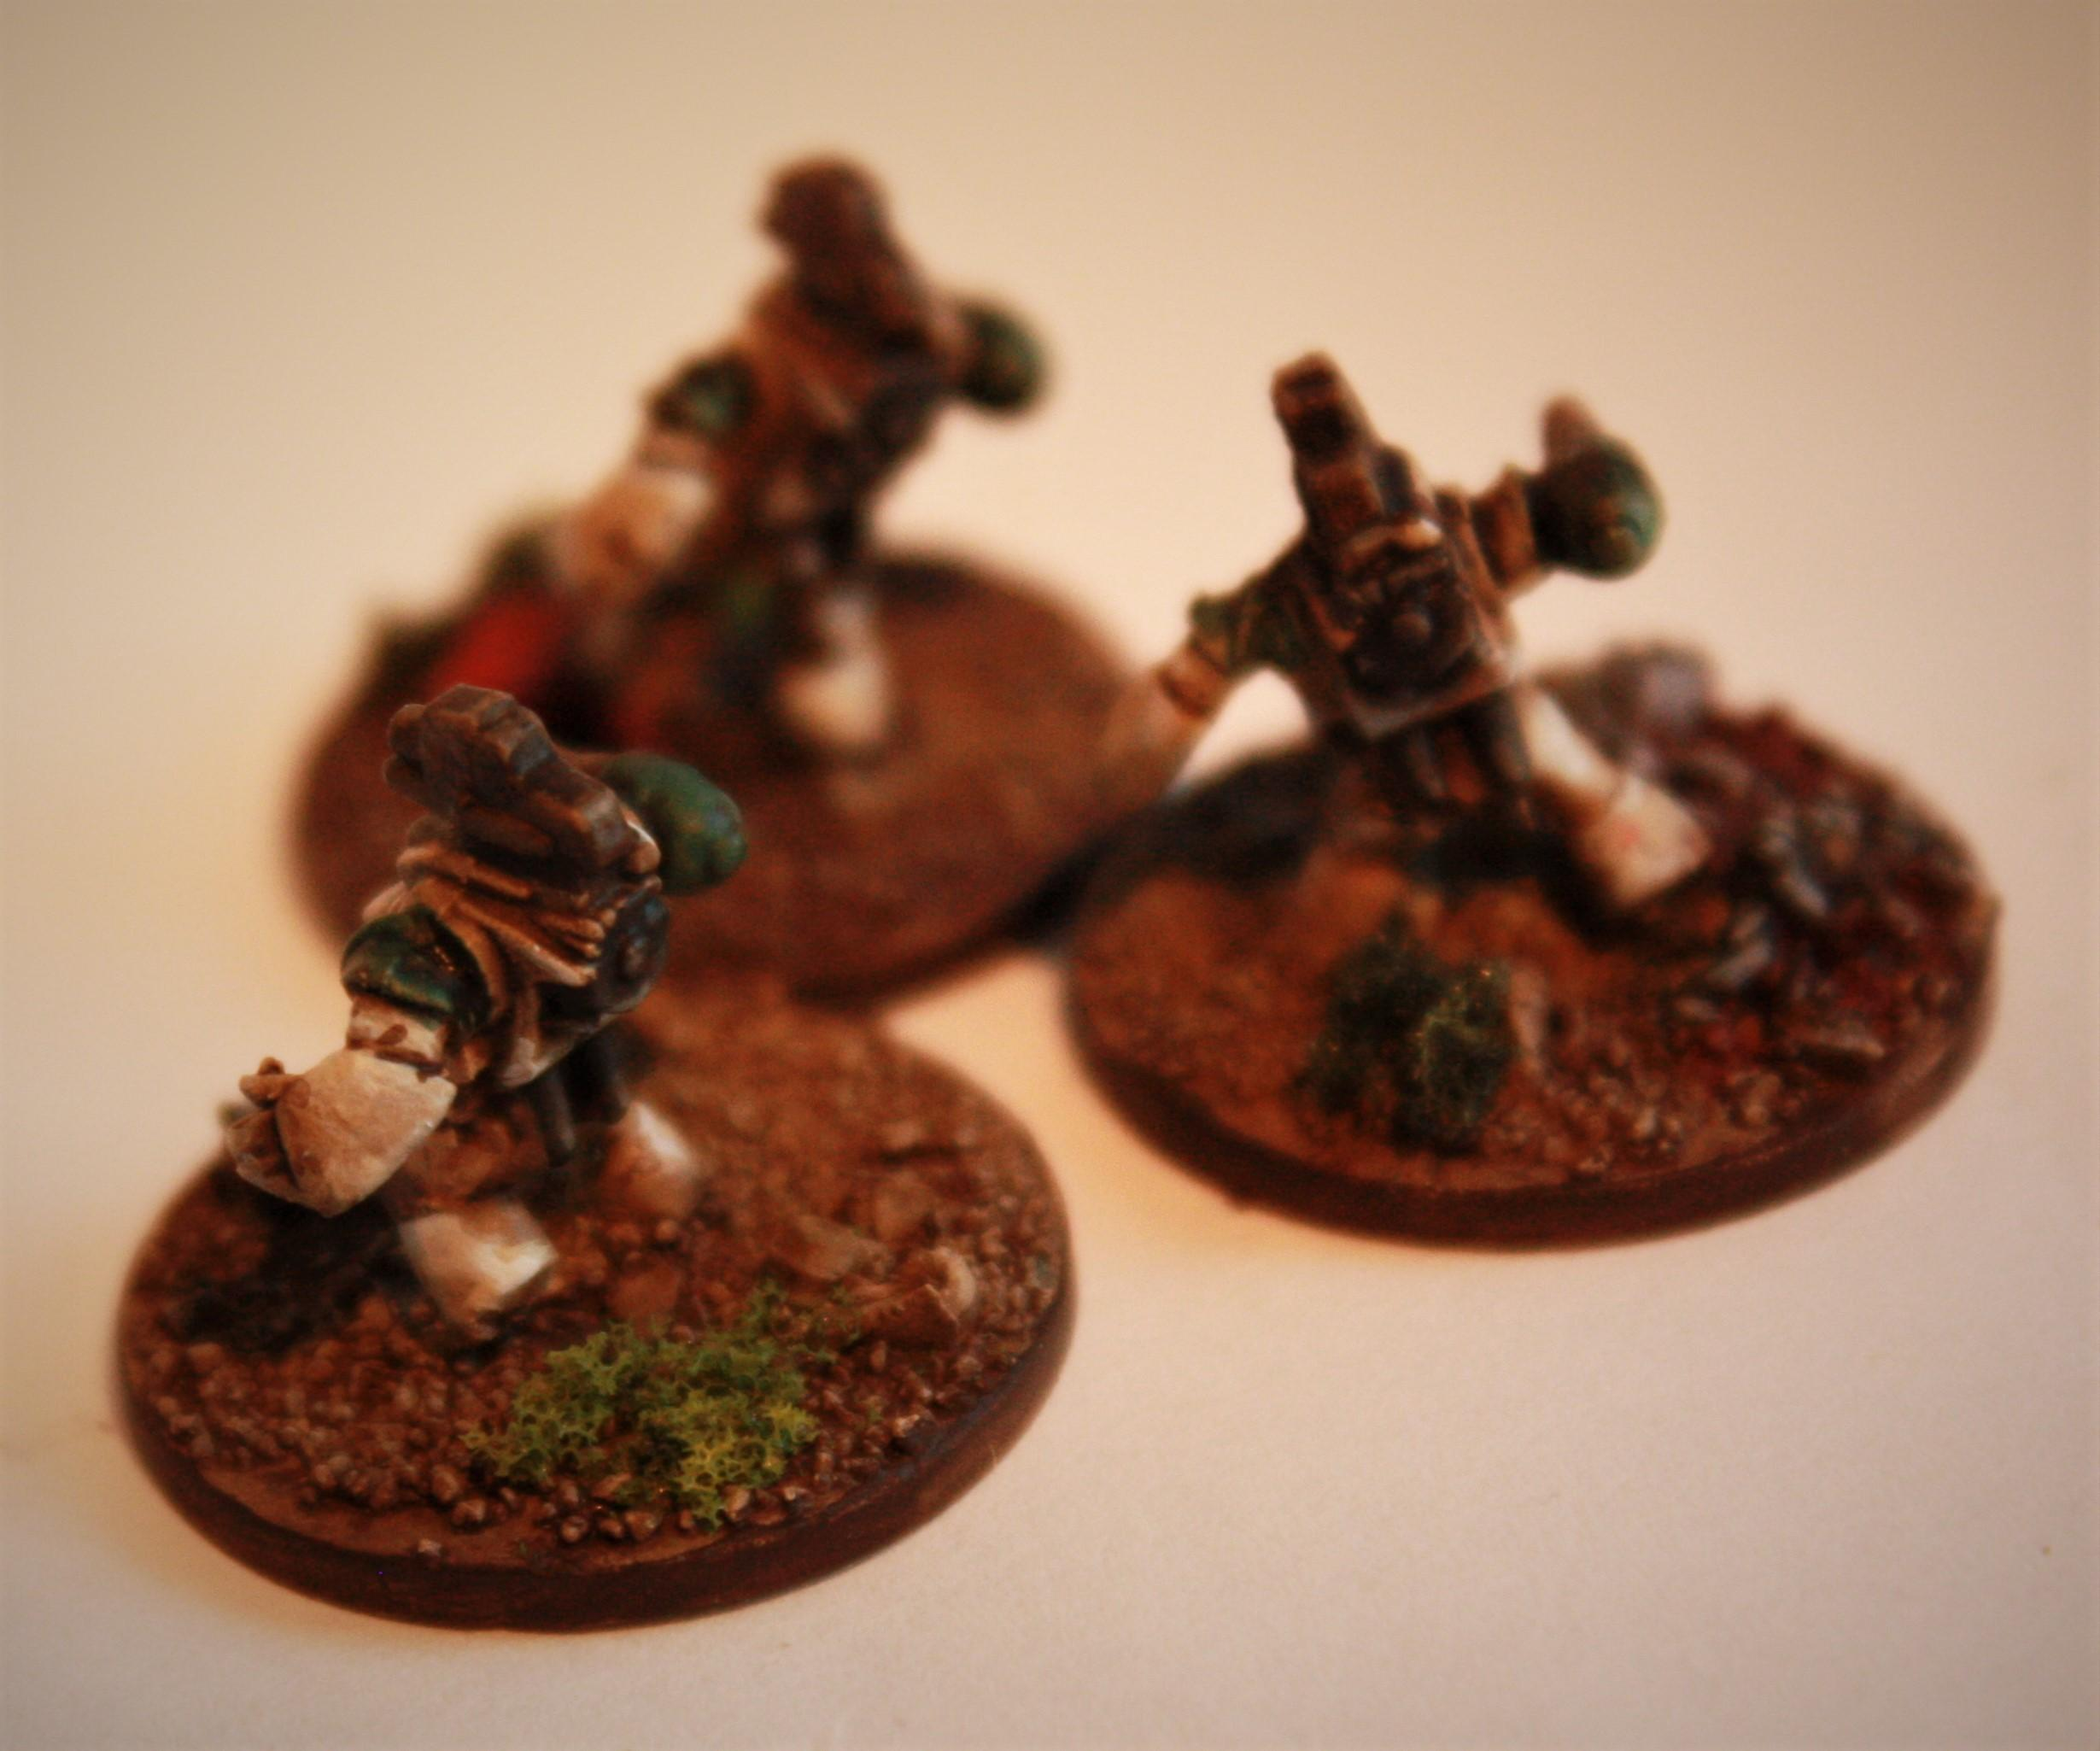 30k, 6mm, Death Guard, Epic, Space Marines, Warhammer 40,000, Xiv